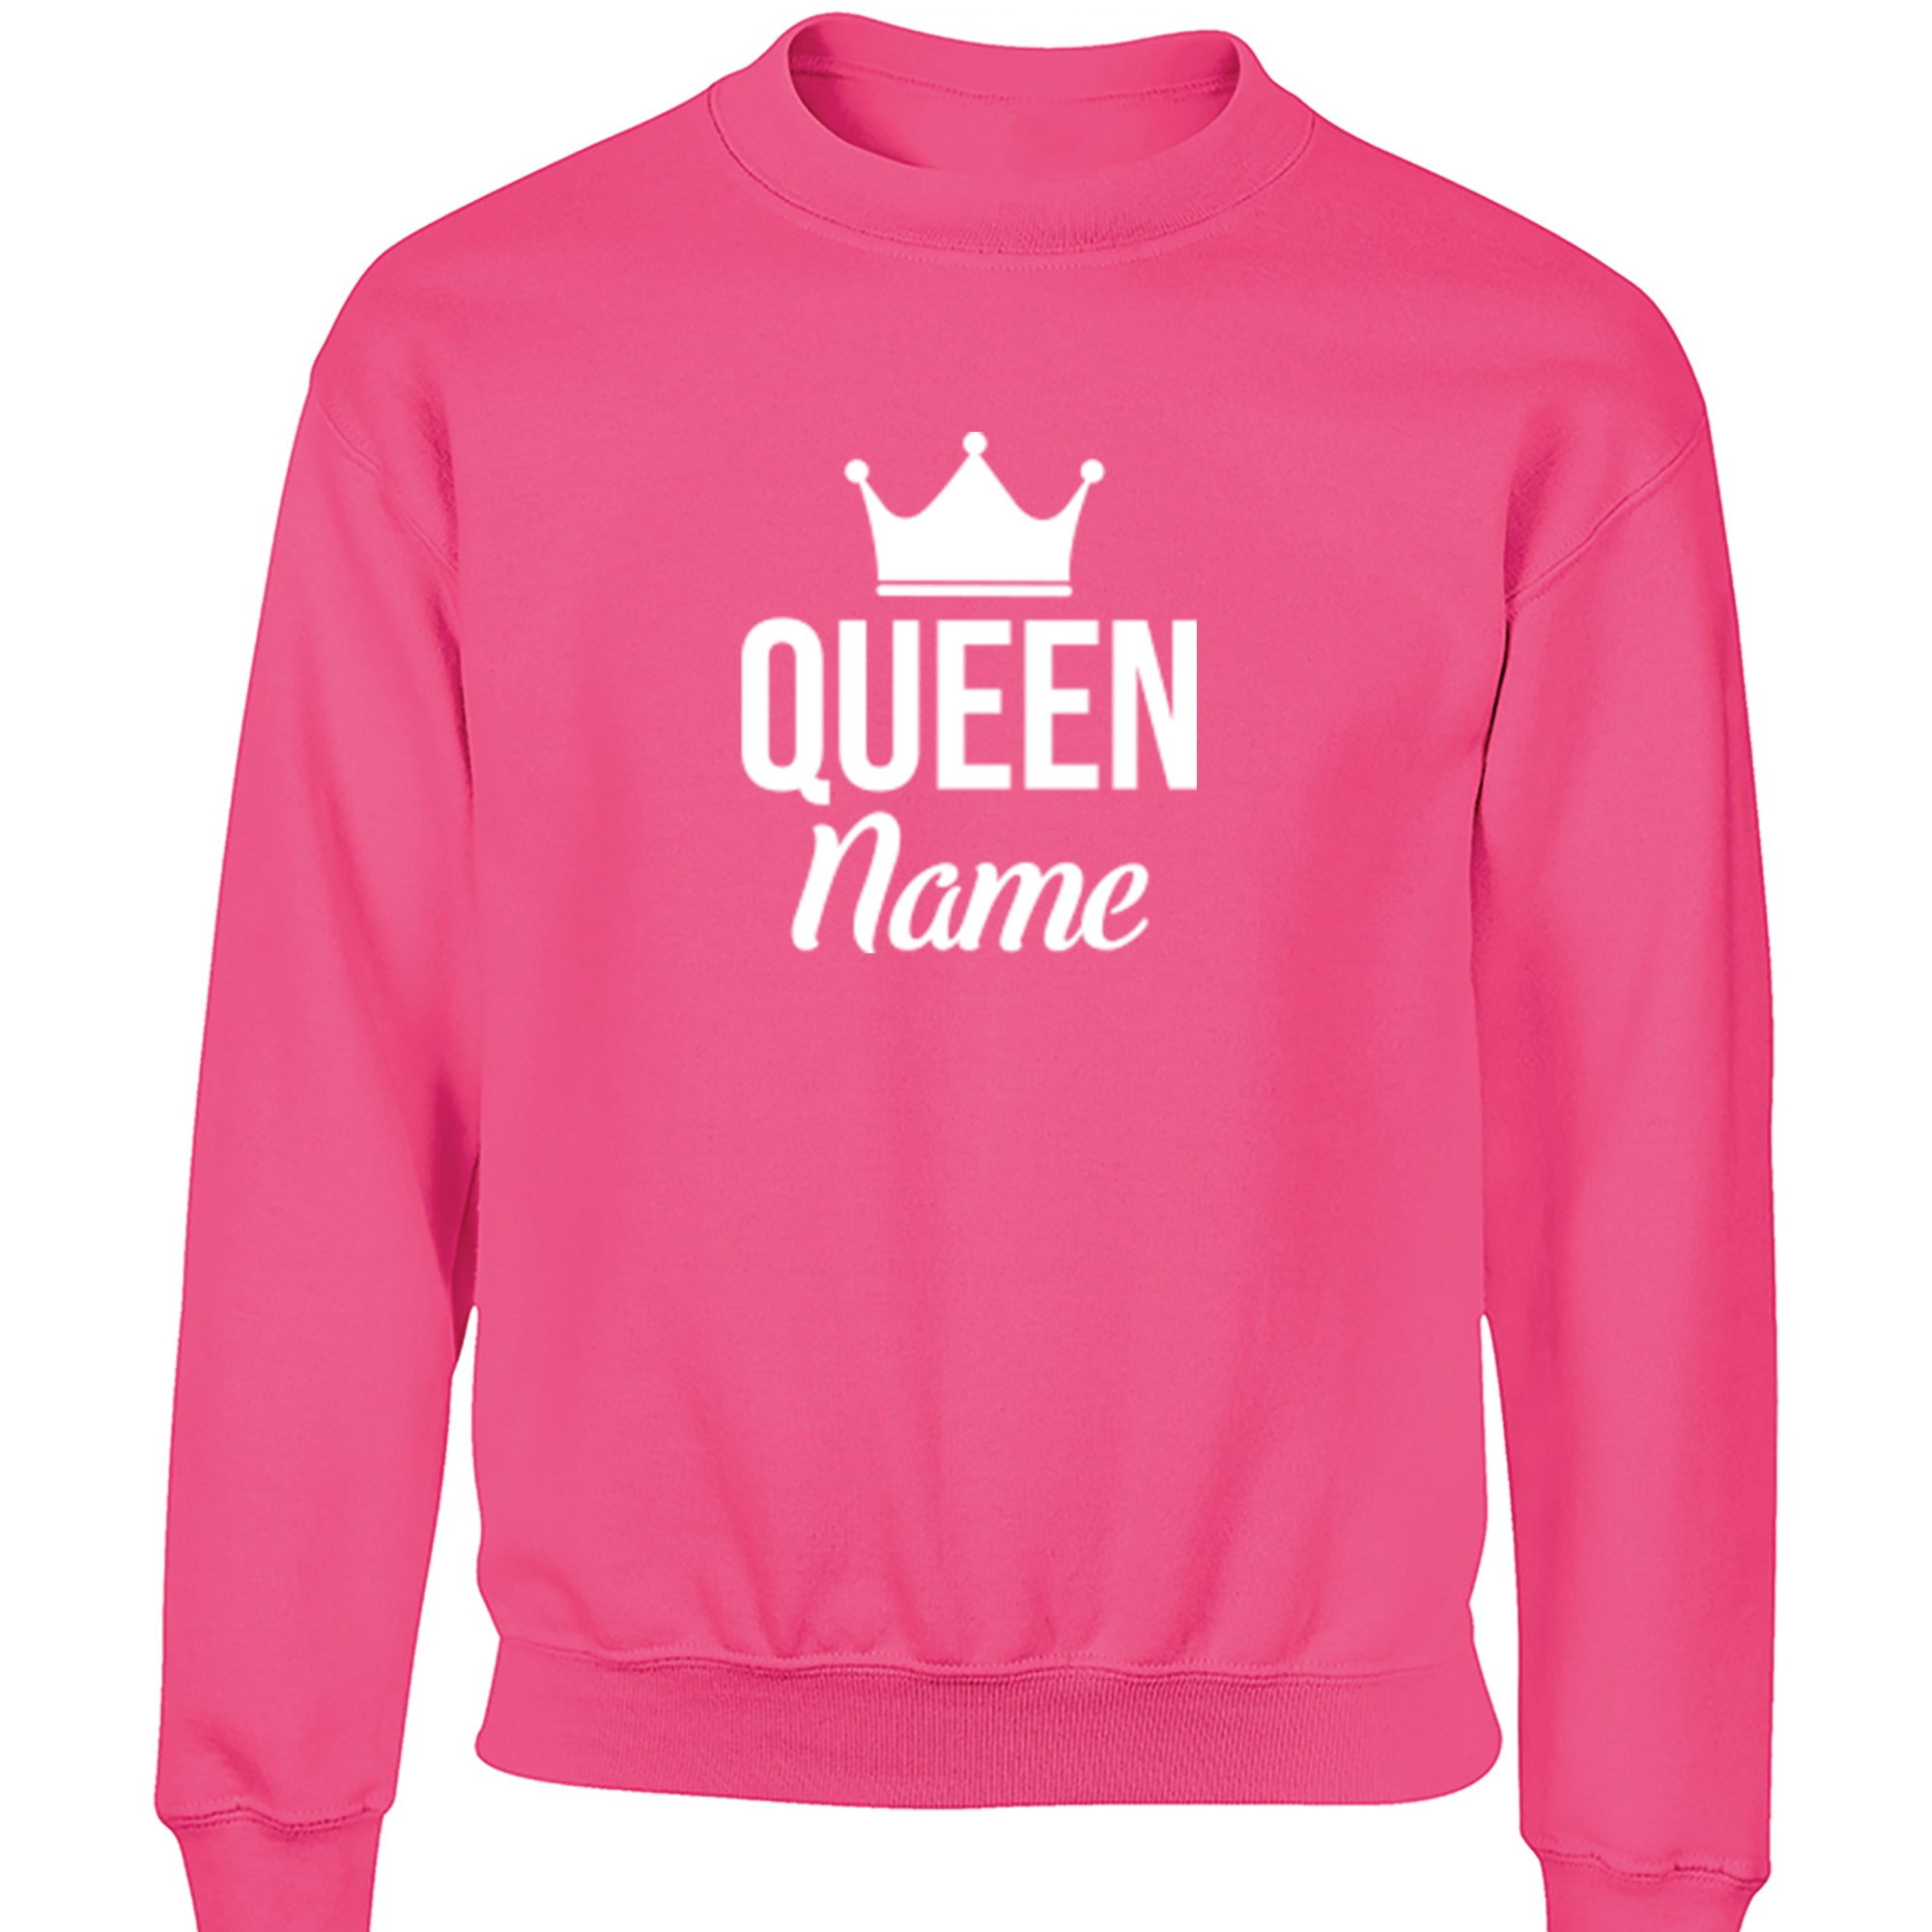 Personalised Queen Design Childrens Ages 3/4-12/14 Unisex Jumper S0465 - Illustrated Identity Ltd.